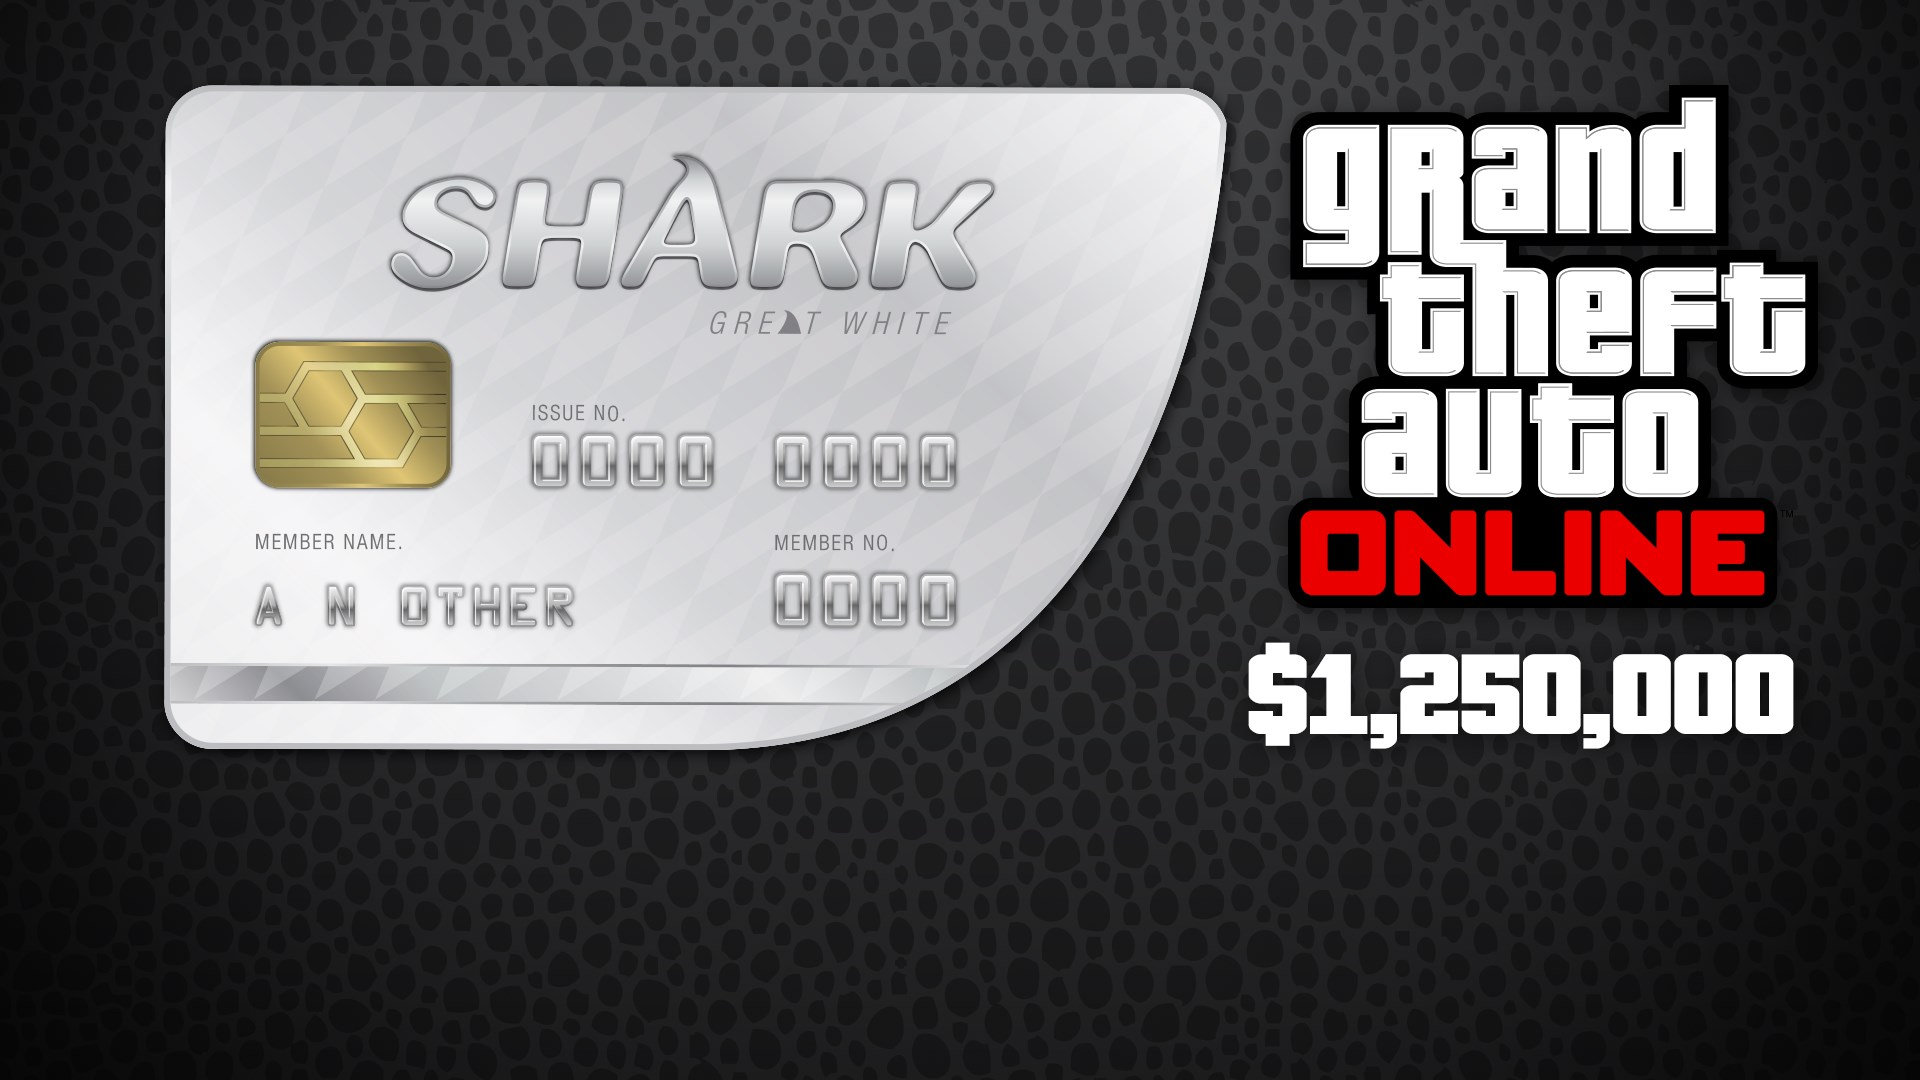 Great White Shark Cash Card